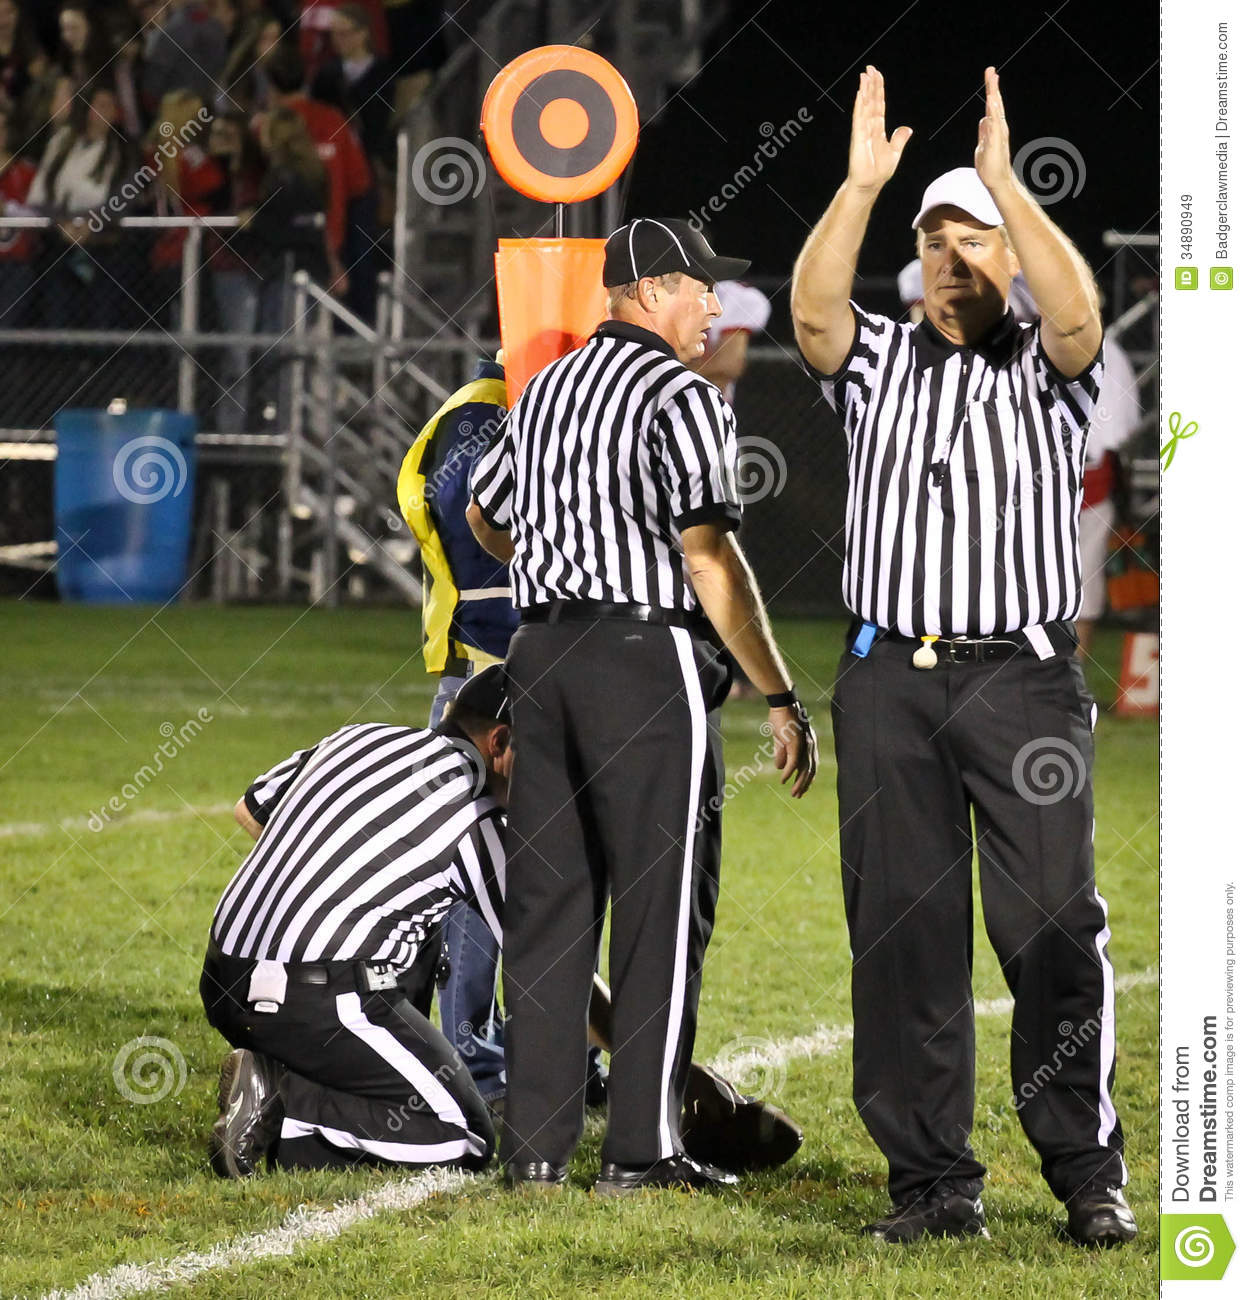 football referees gesturing fourth down and short